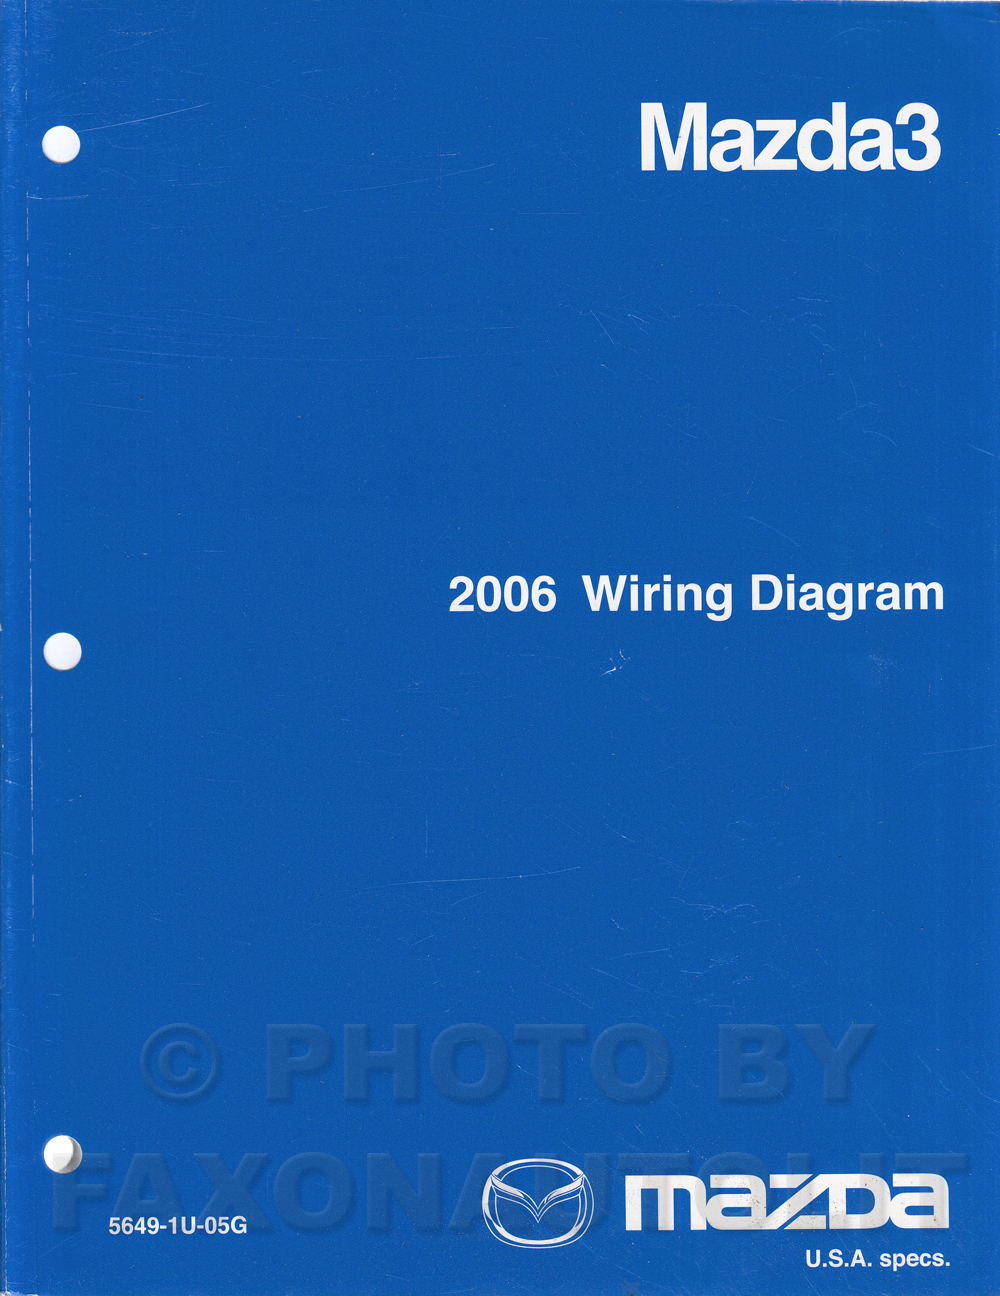 2004 Mazda 3 Wiring Diagrams Worksheet And Diagram Radio 2006 Detailed Schematics Rh Lelandlutheran Com